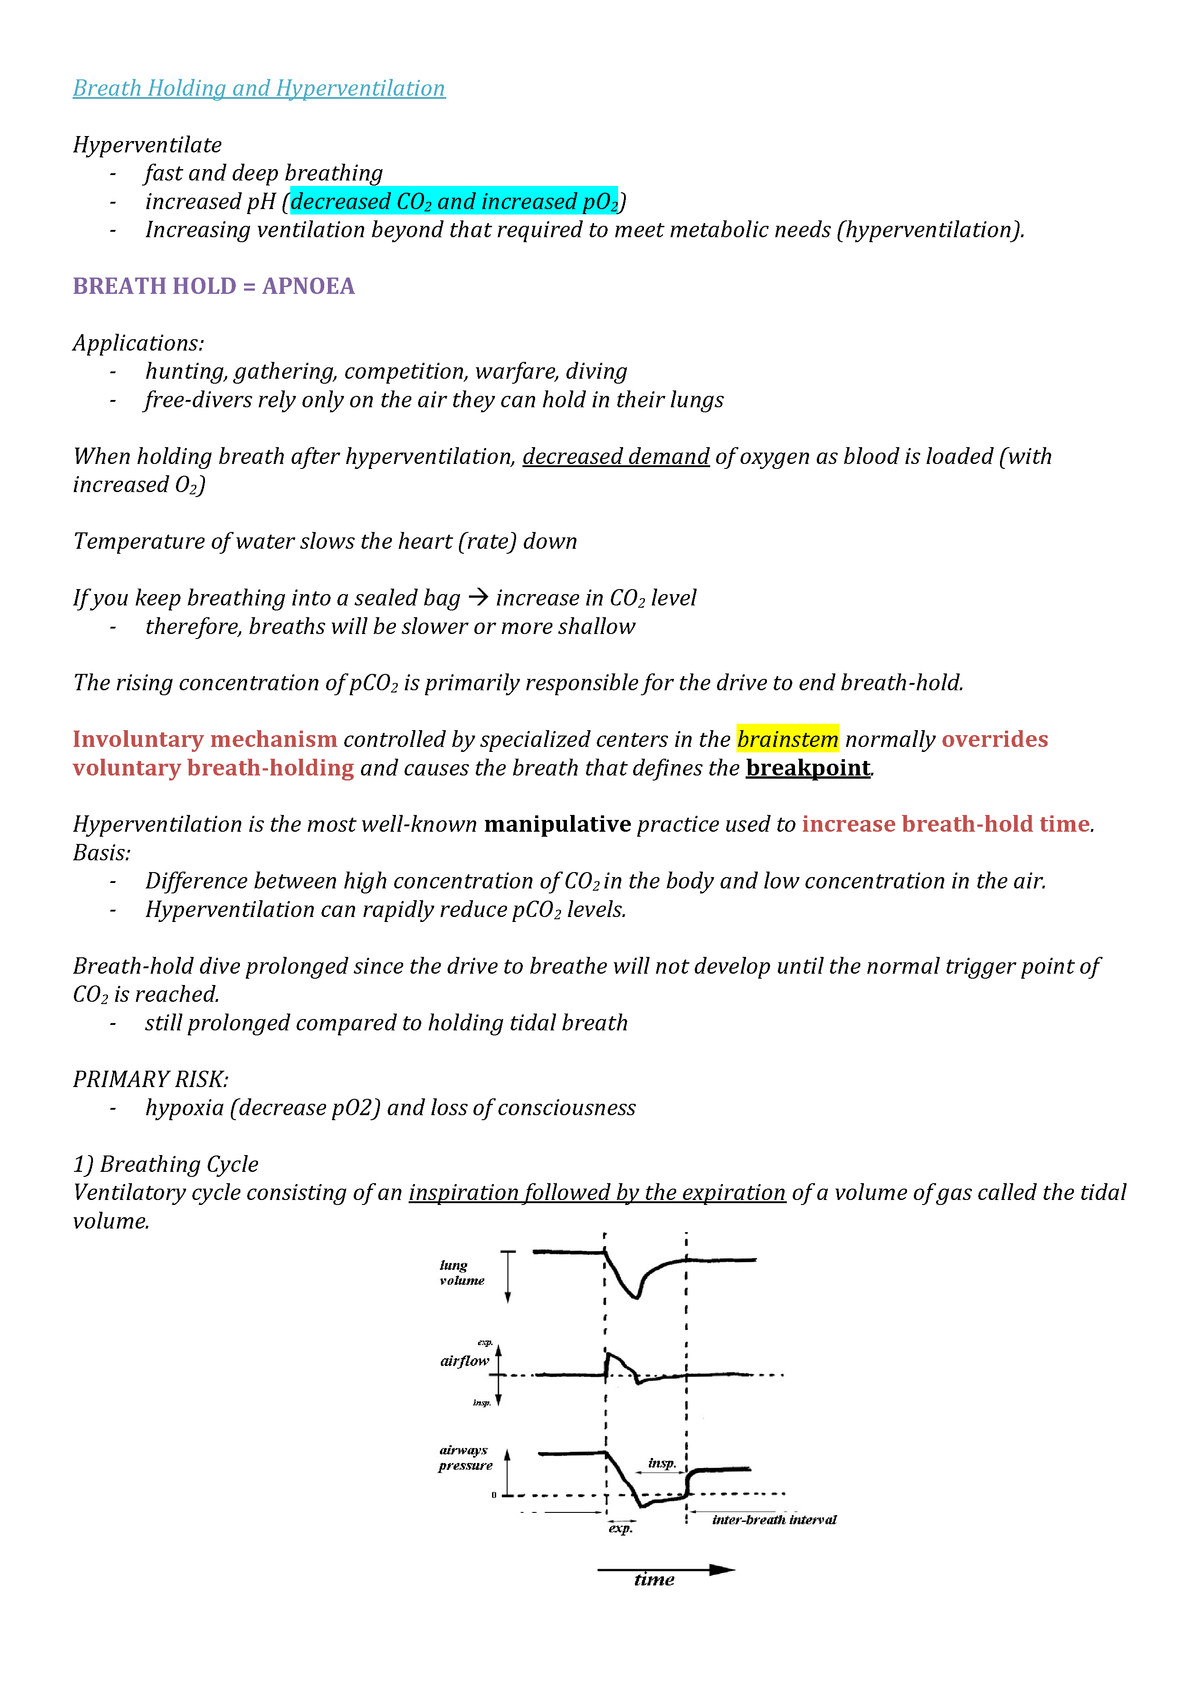 Lecture notes, lecture Breath Holding and Hyperventilation - 091400